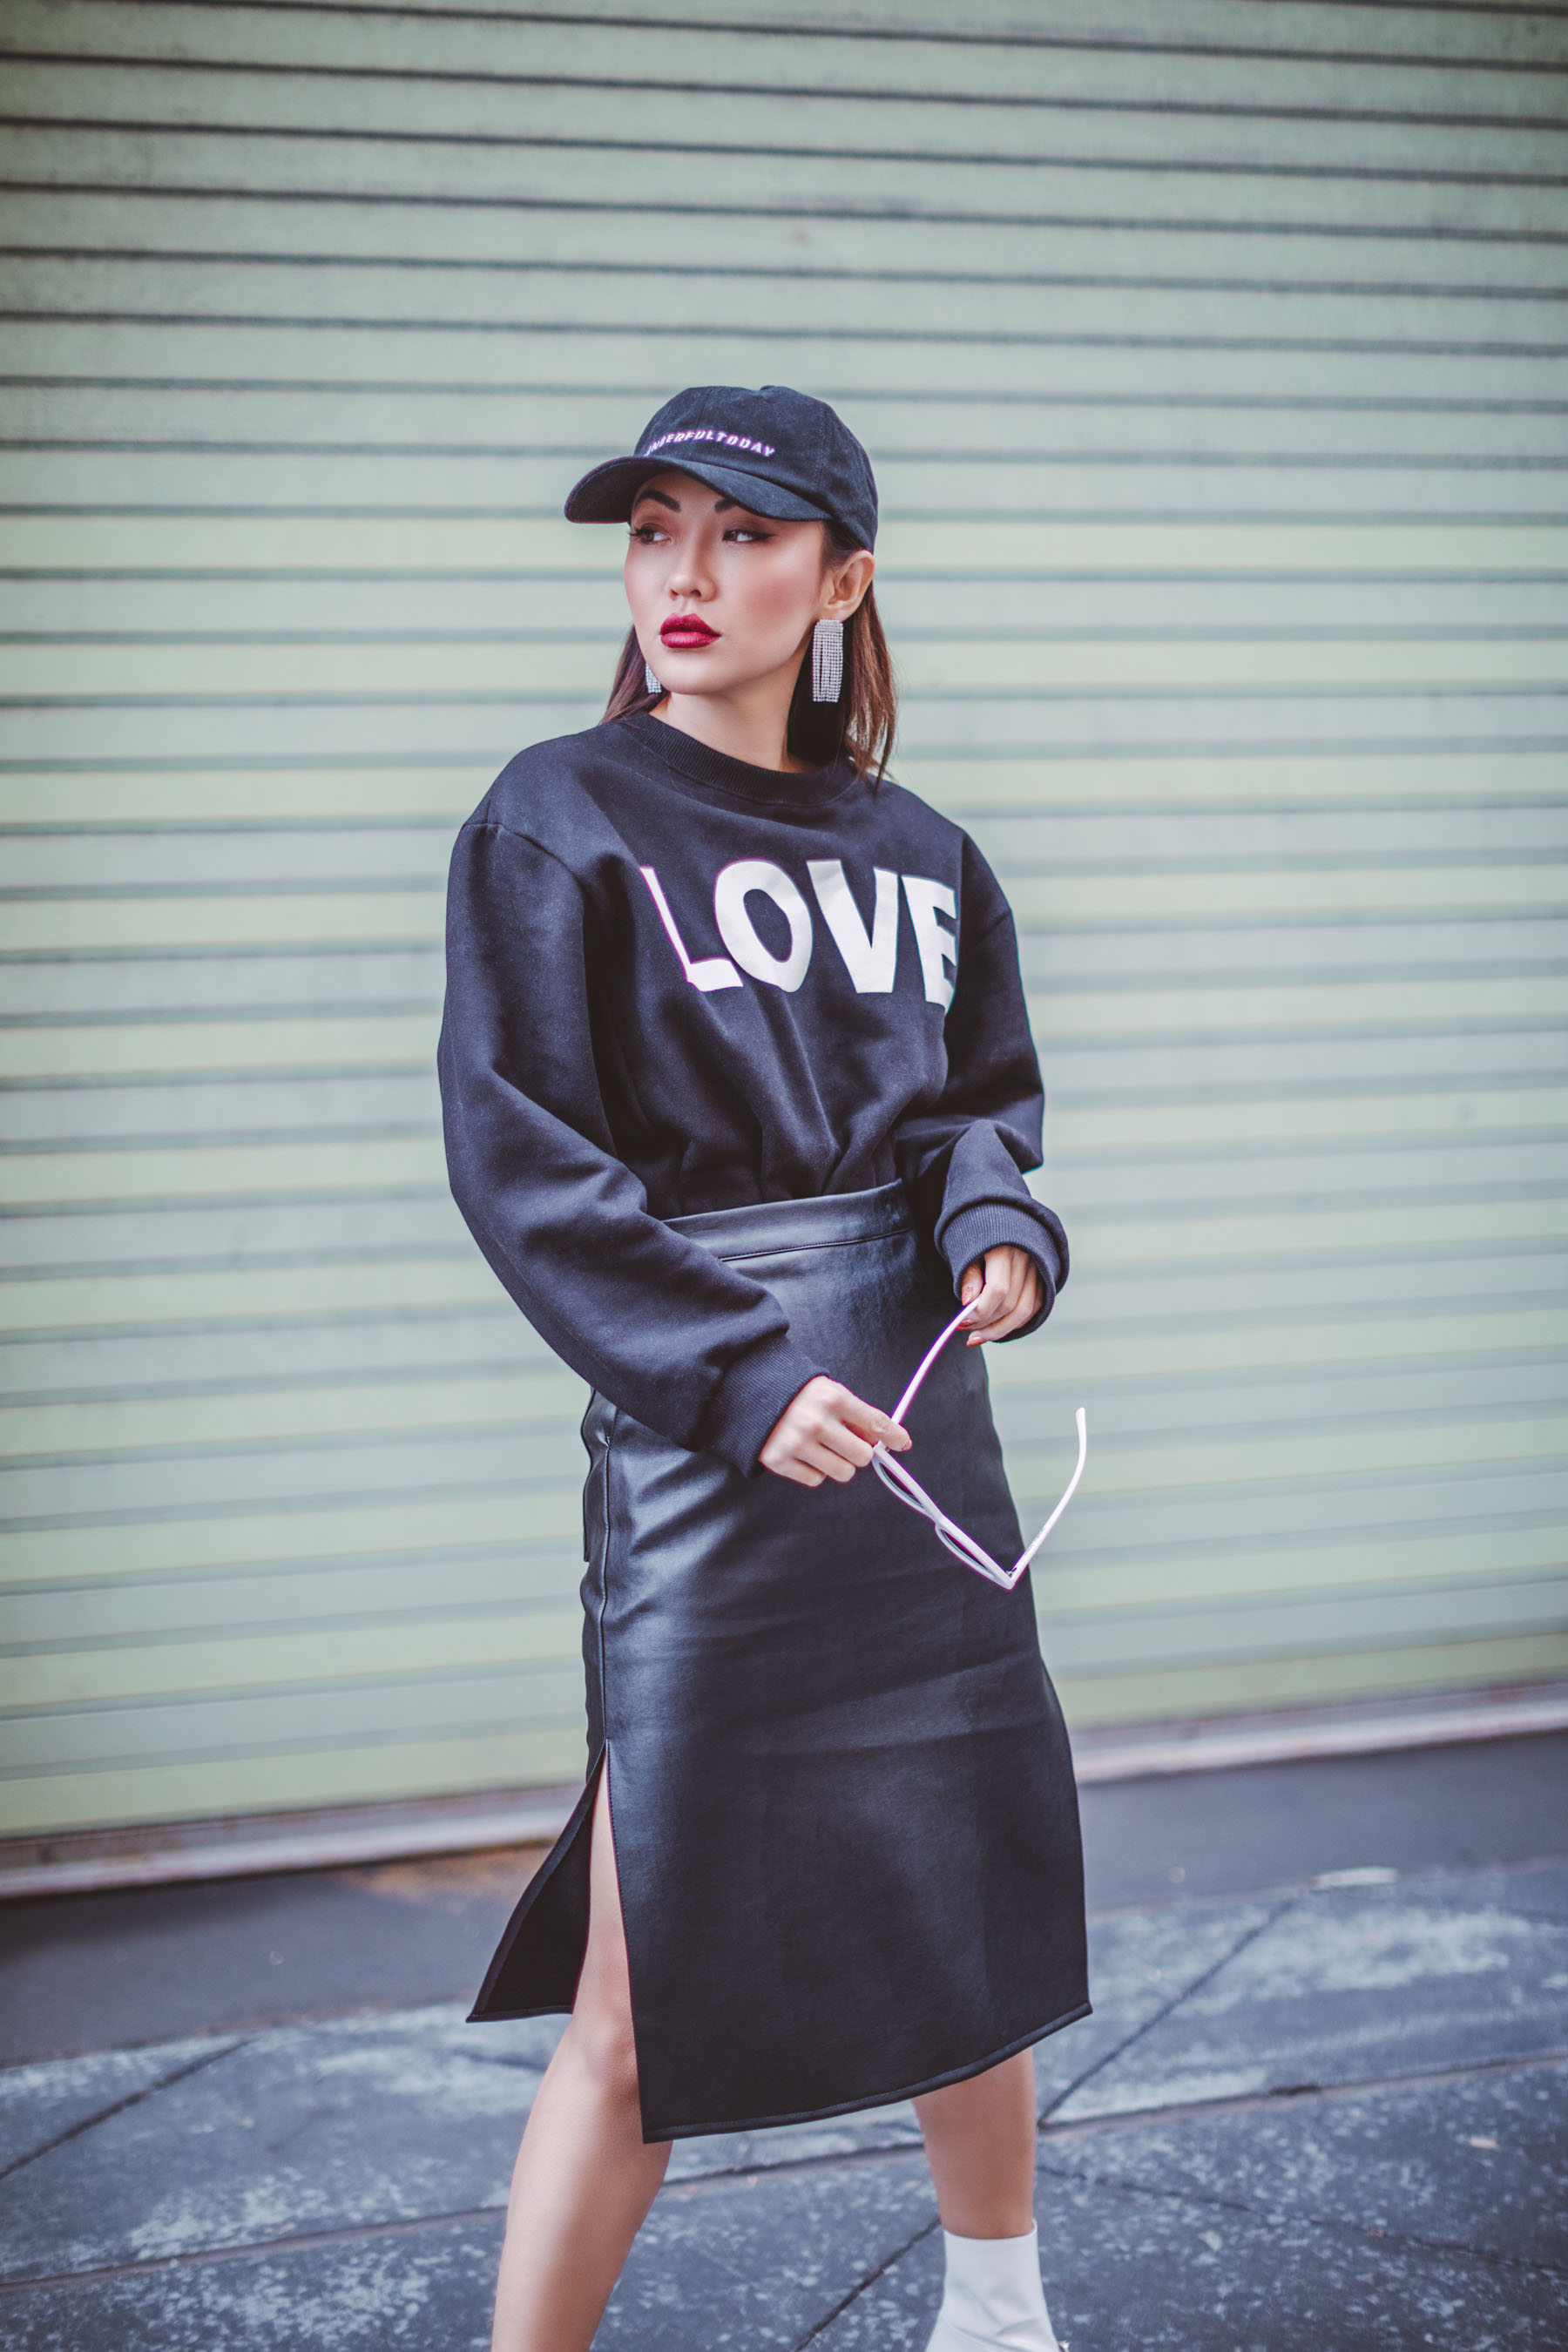 How to Look Stylish in a Quilted Puffer Jacket // Notjessfashion.com // oversized graphic sweater with baseball cap, leather skirt, and pink sunglasses, new york fashion blogger, asian blogger